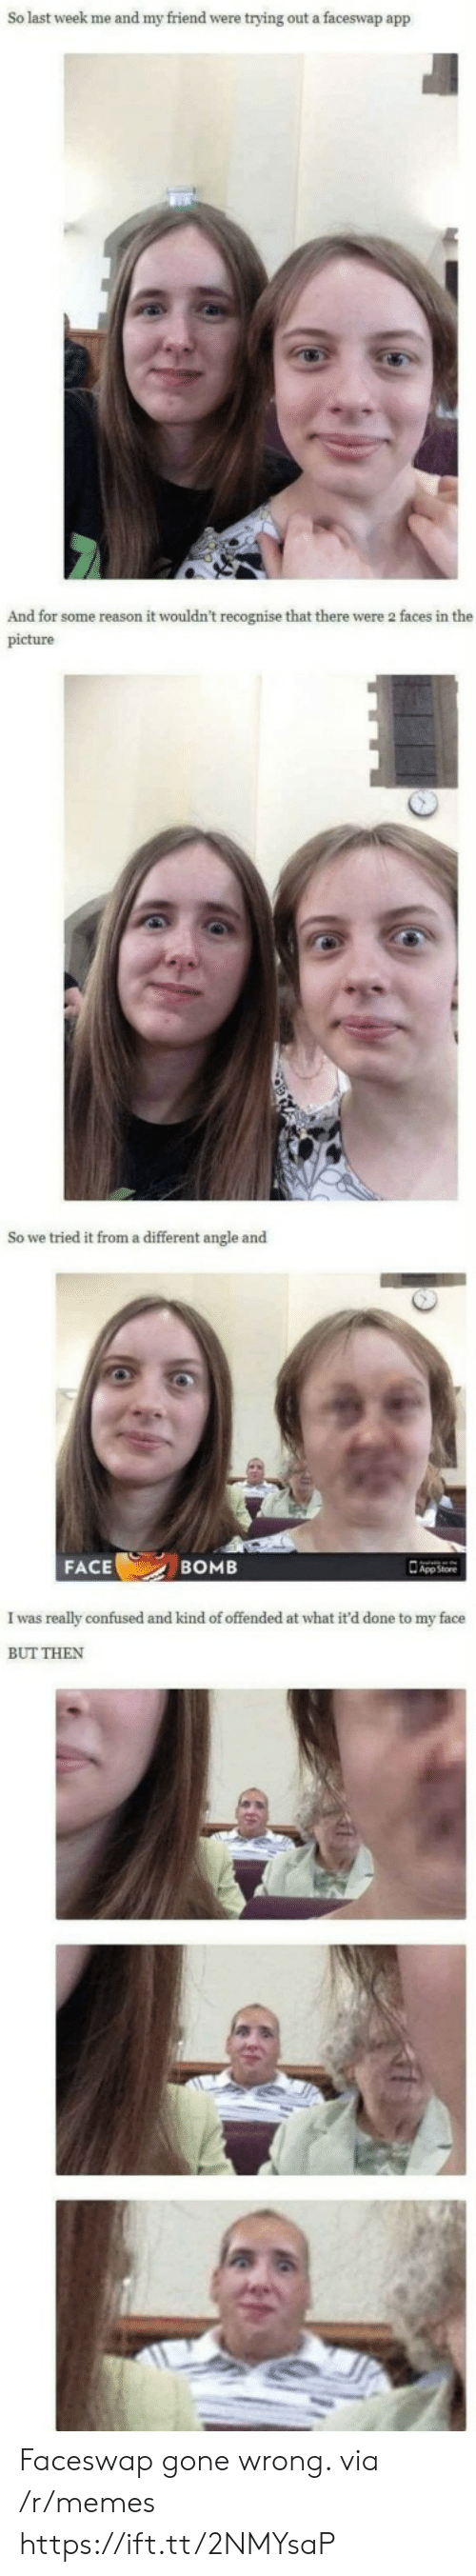 Confused, Memes, and Reason: So last week me and my friend were trying out a faceswap app  And for some reason it wouldn't recognise that there were 2 faces in the  picture  So we tried it from a different angle and  FACE  BOMB  I was really confused and kind of offended at what it'd done to my face  BUT THEN Faceswap gone wrong. via /r/memes https://ift.tt/2NMYsaP